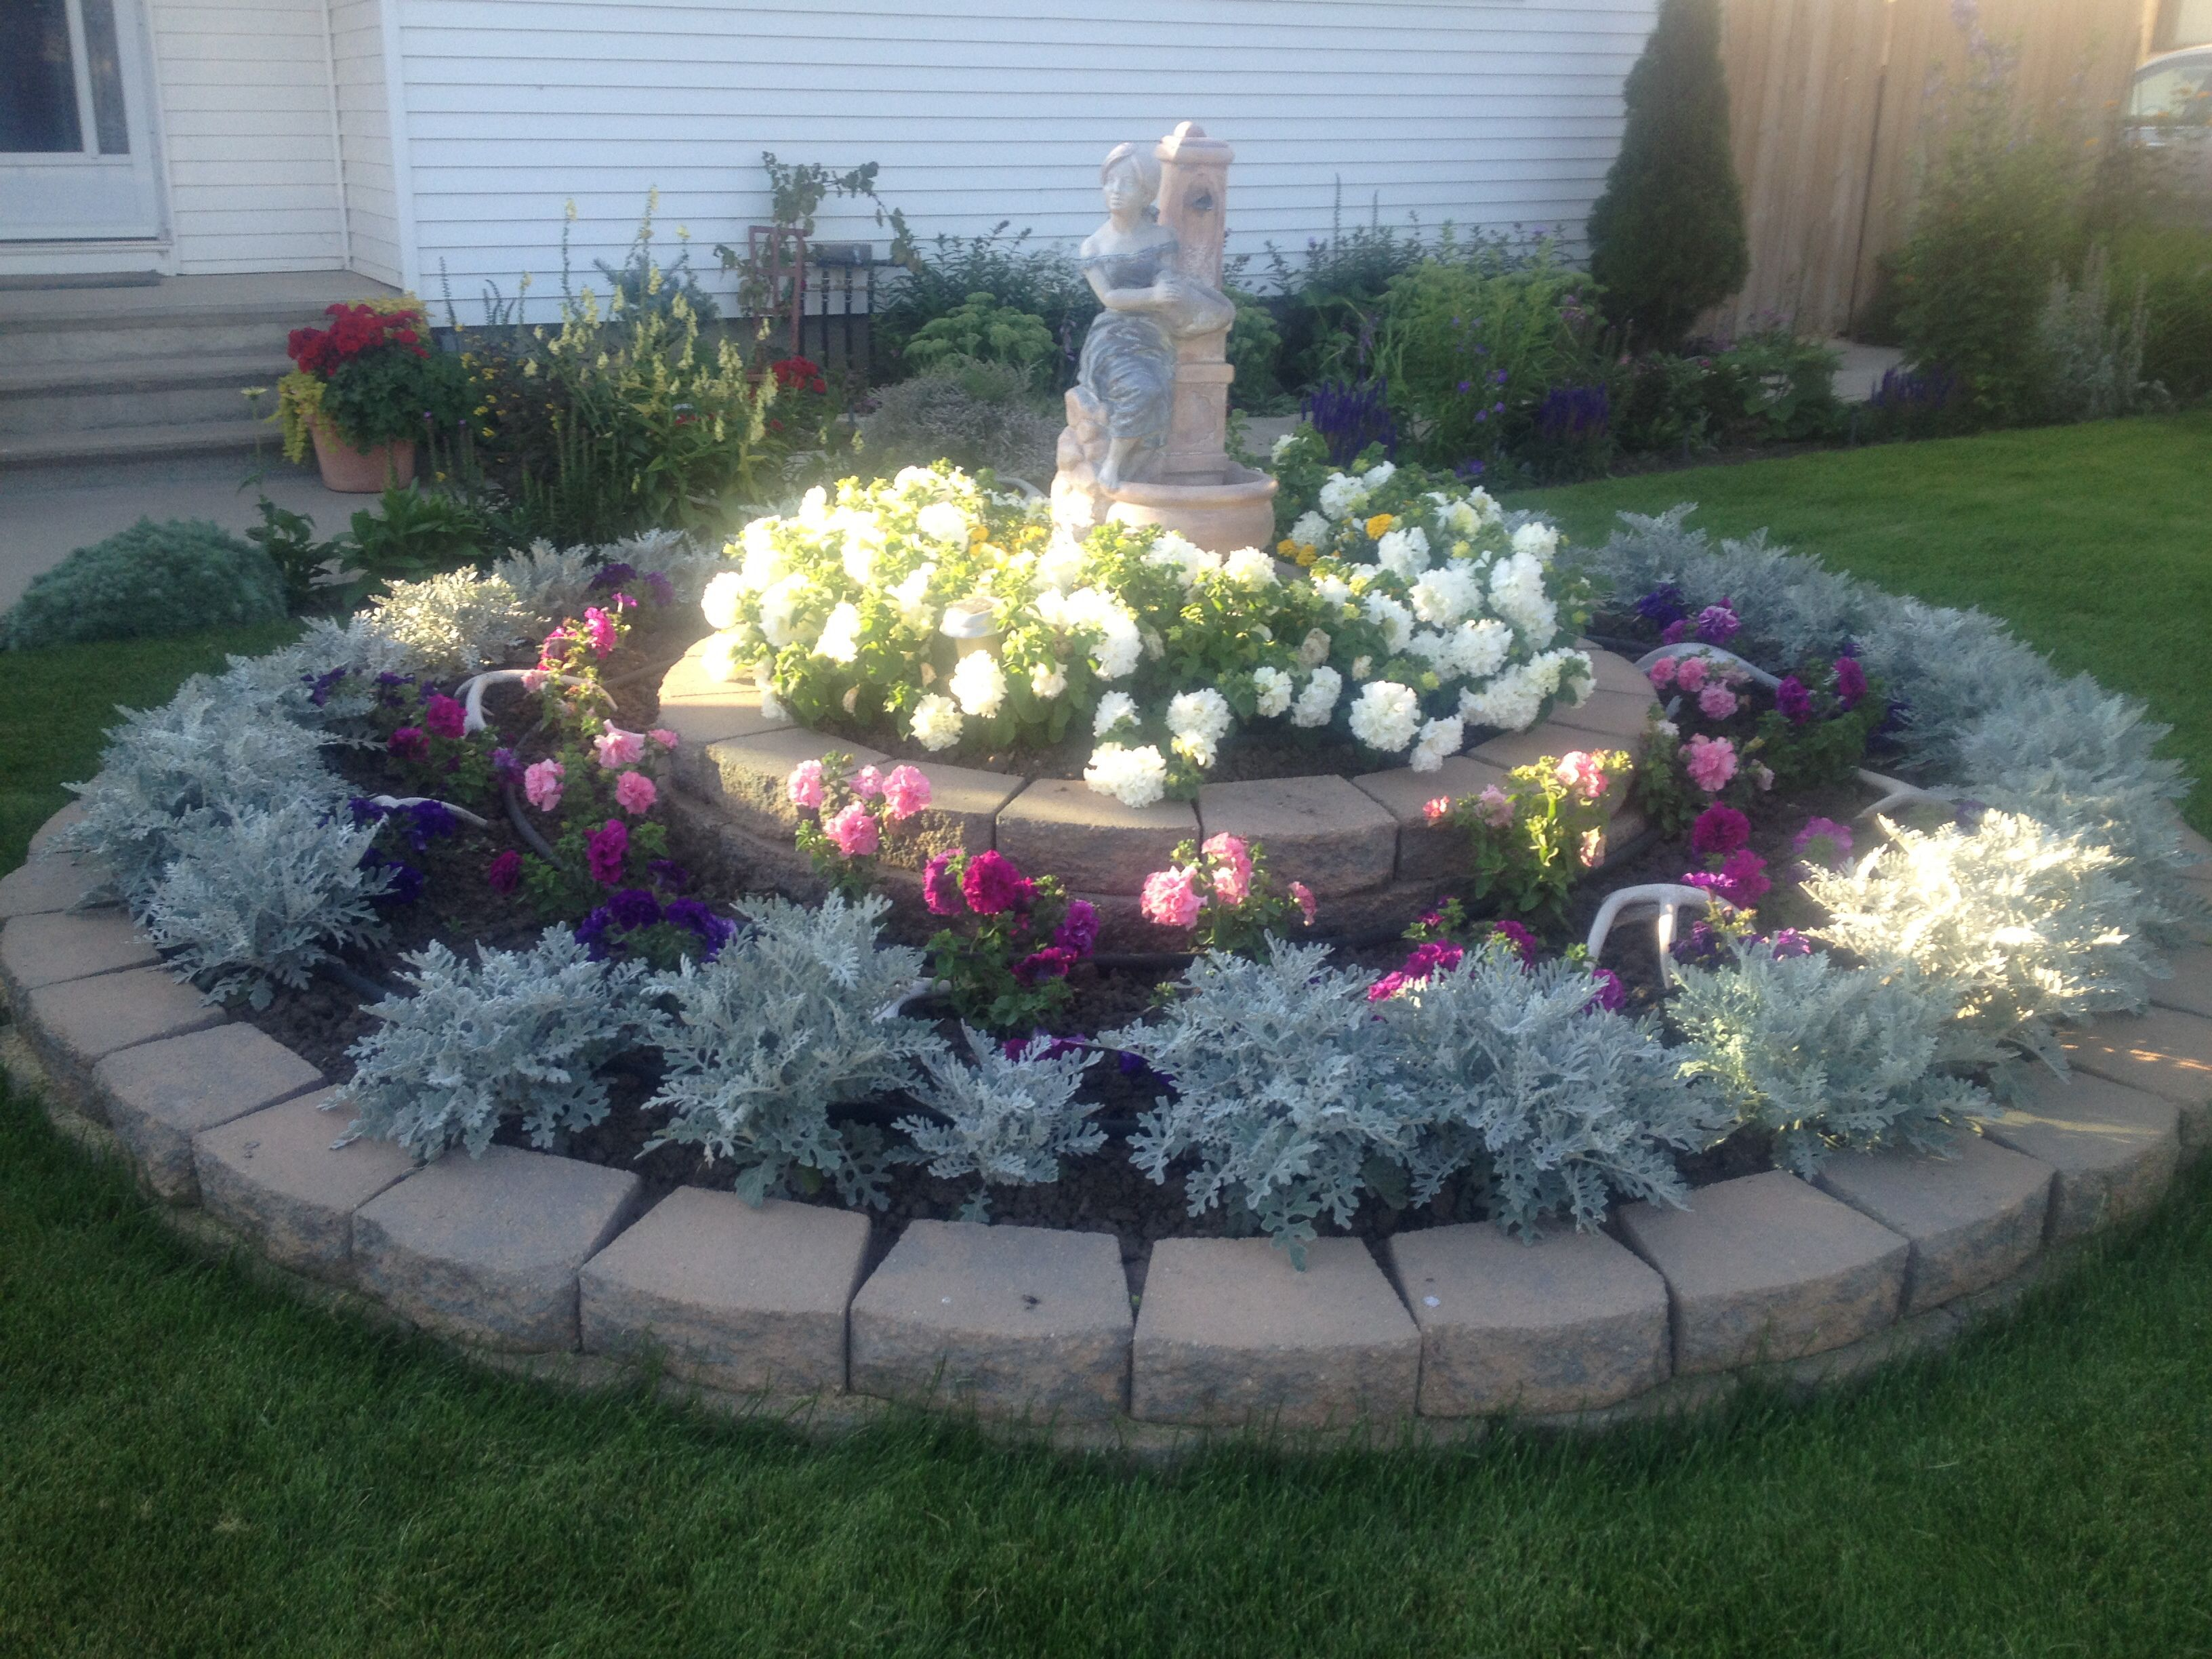 Circle flower garden in front of my house garden decor pinterest gardens flower and yards for Flower ideas for yard